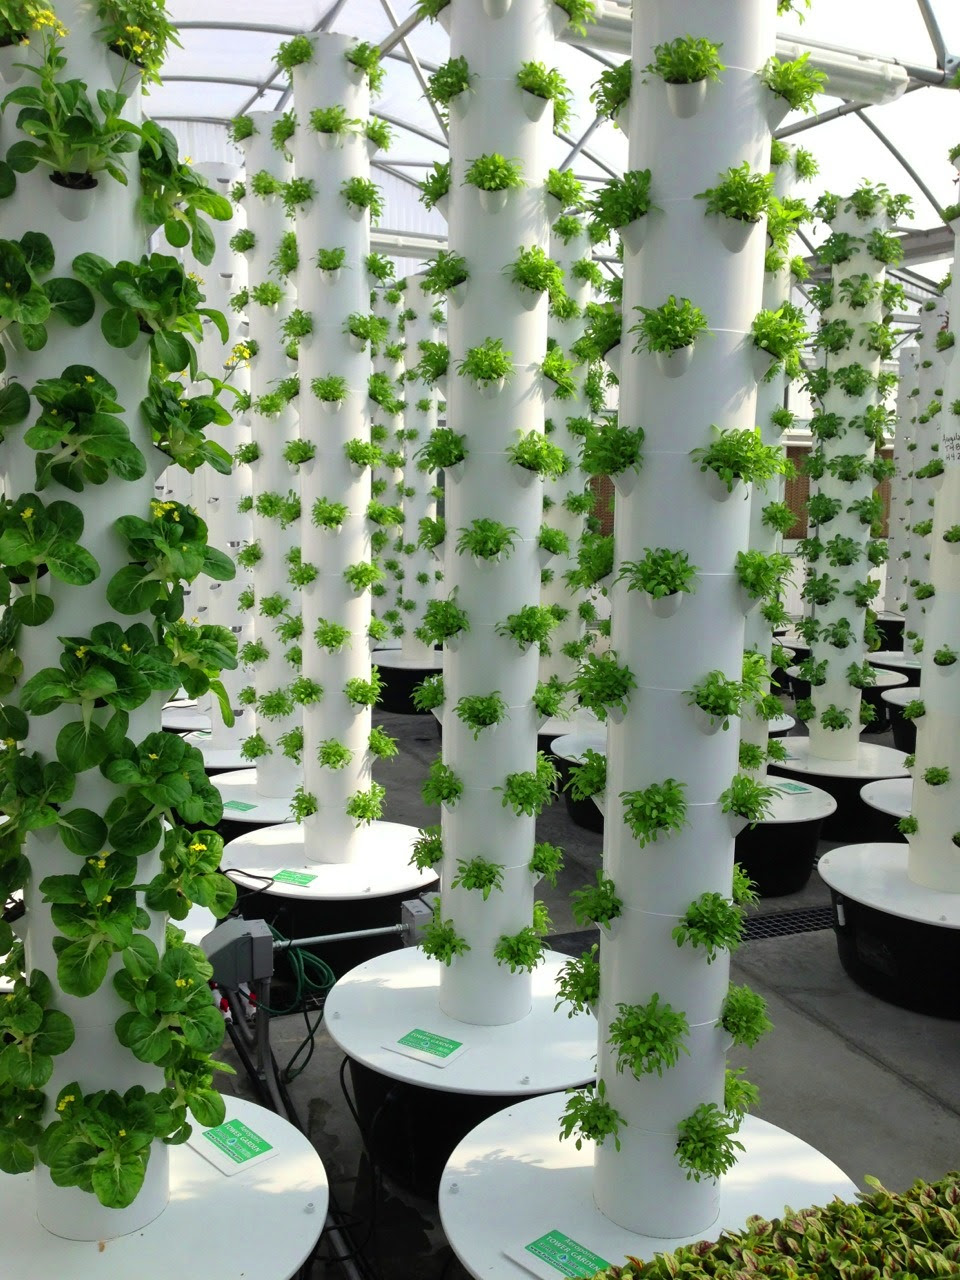 Local Tower Garden Farmer Produces Aeroponic Food for ...